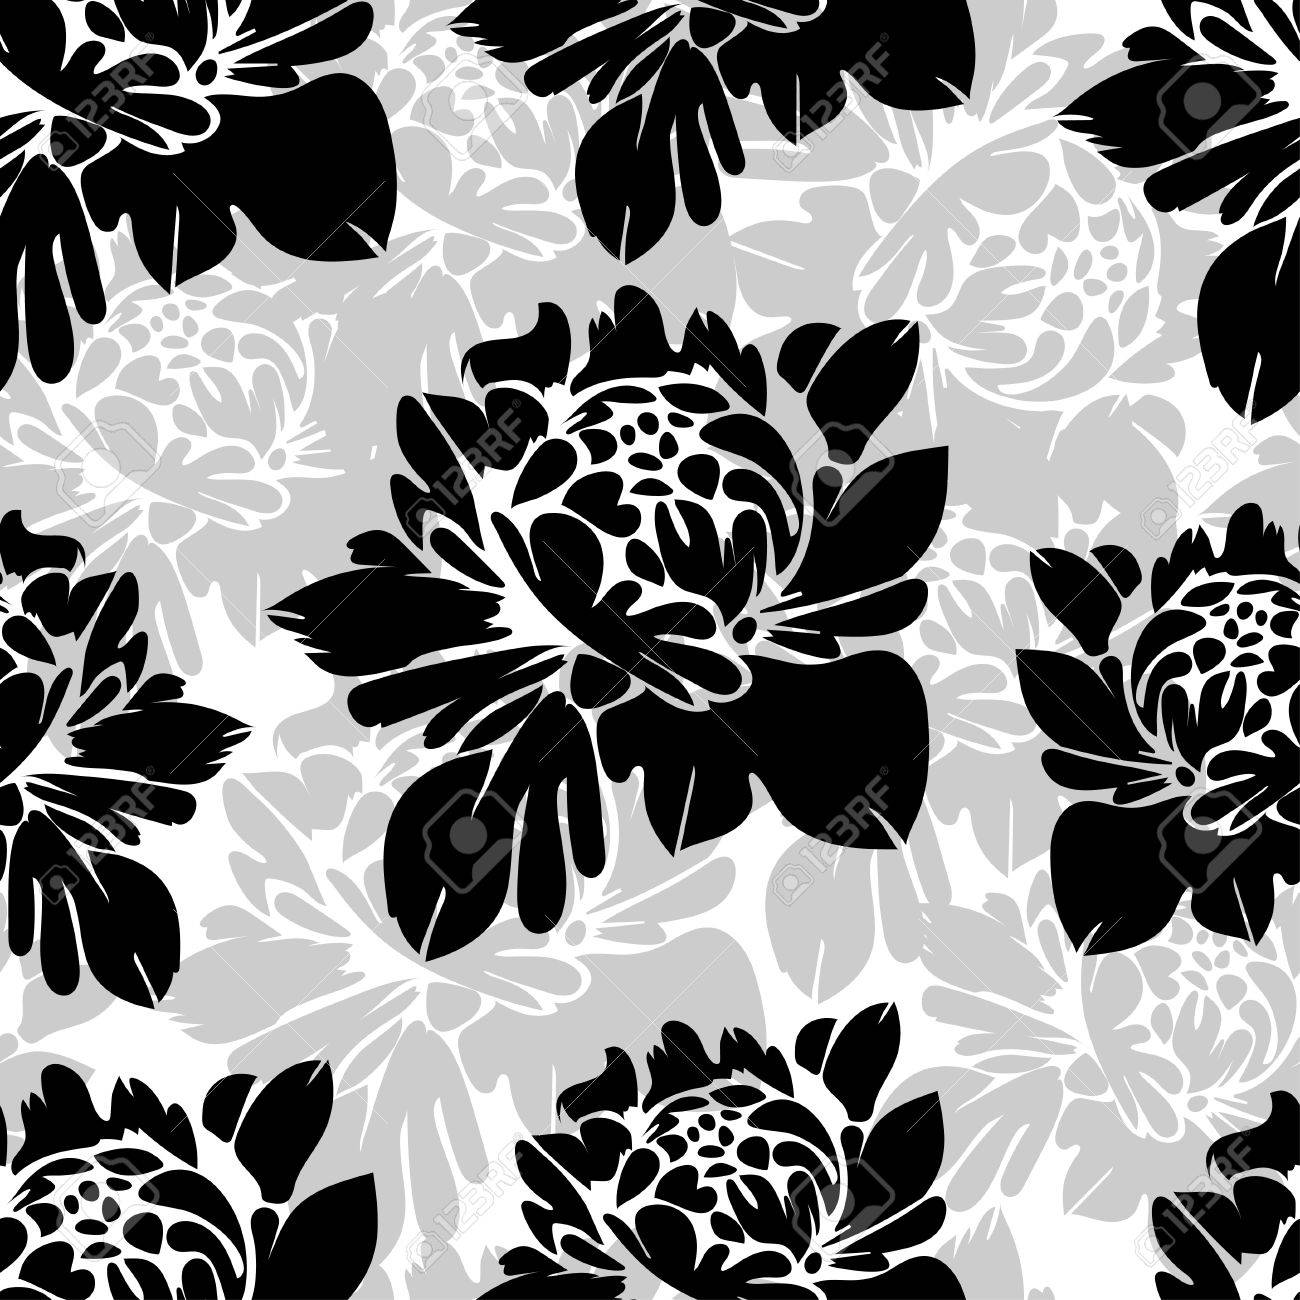 Abstract Black And White Flowers Seamless Pattern Royalty Free